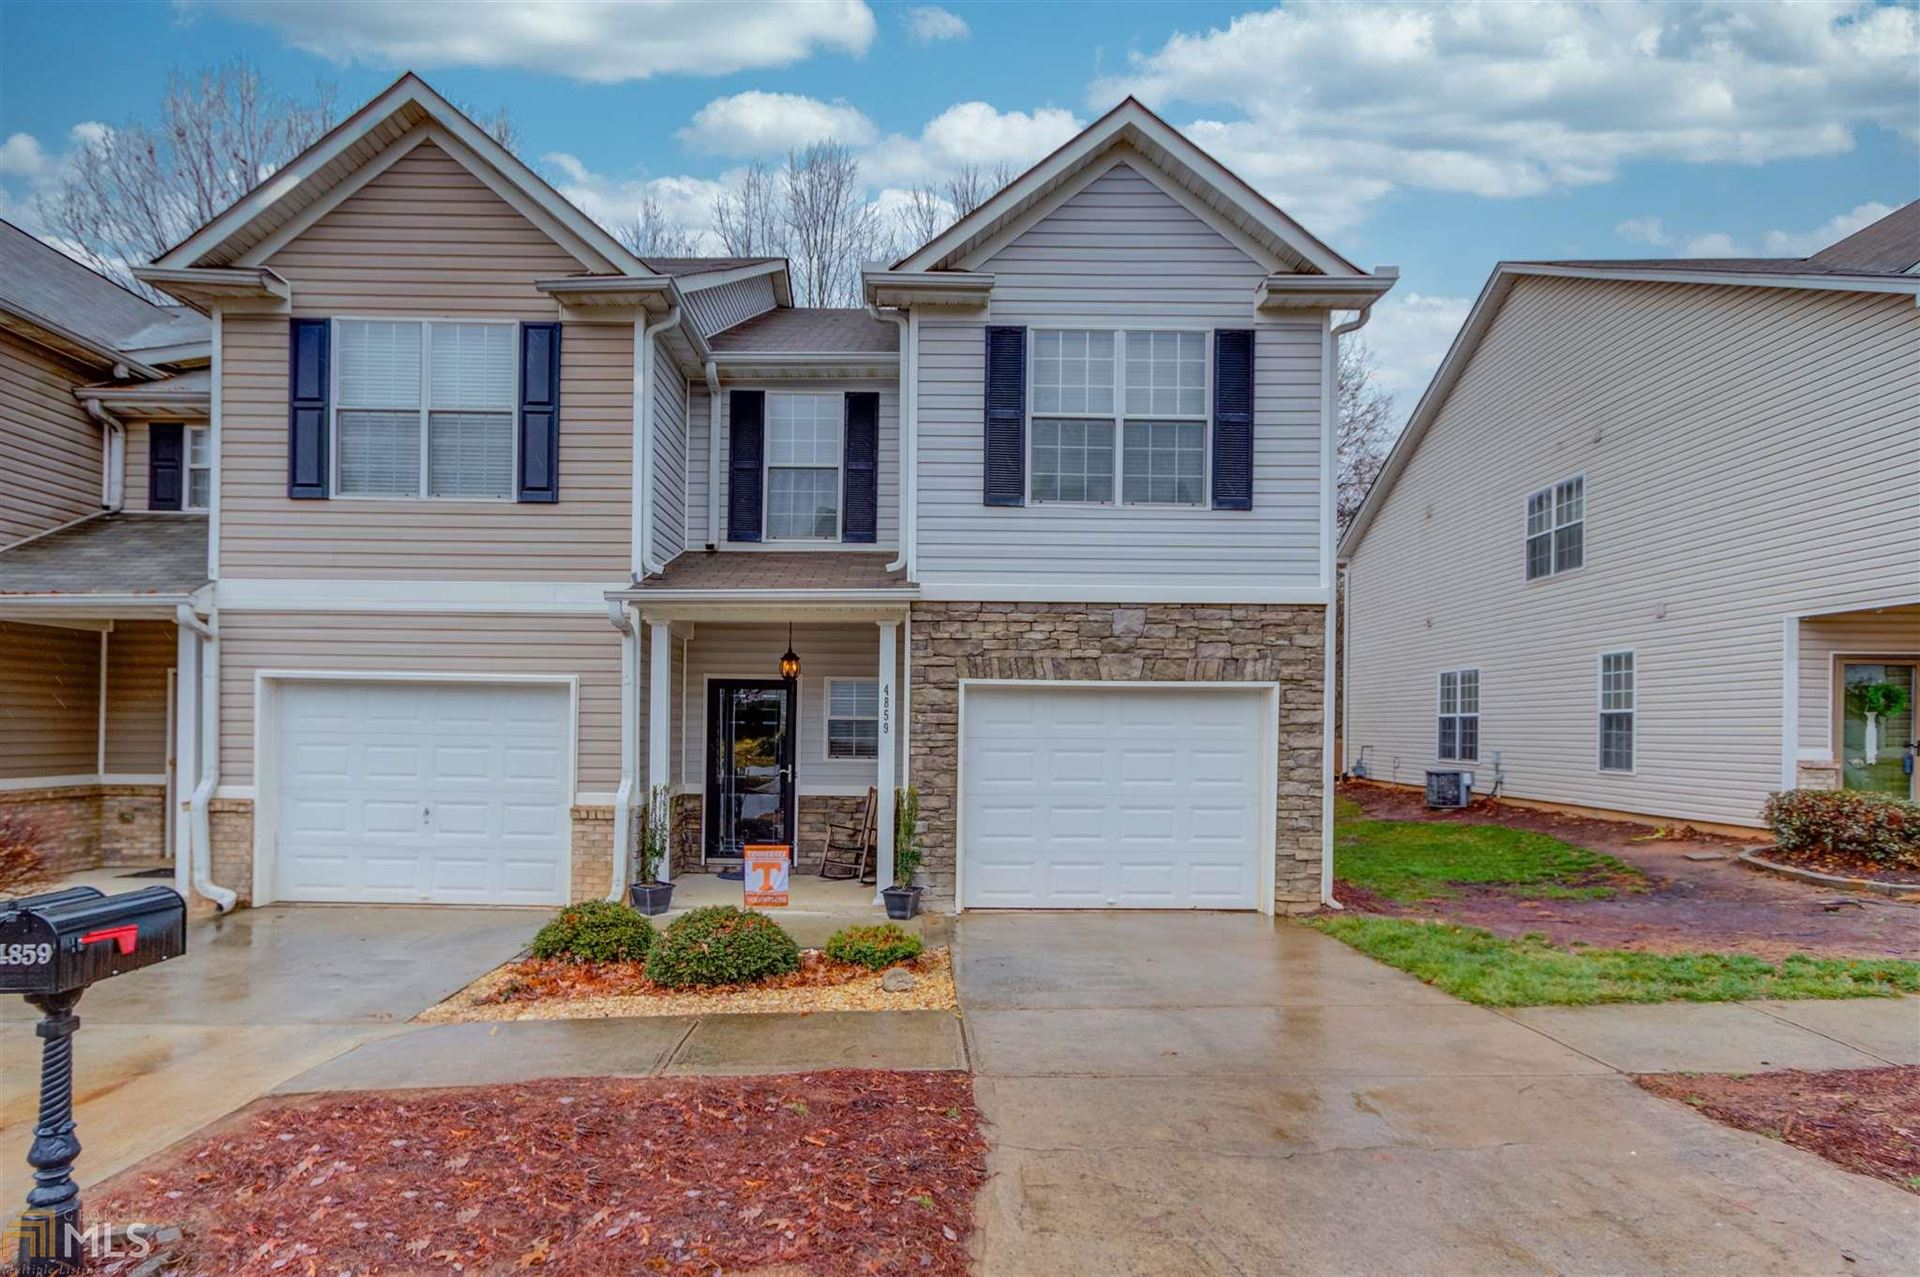 4859 Beacon Ridge Ln, Flowery Branch, GA 30542 - #: 8910452